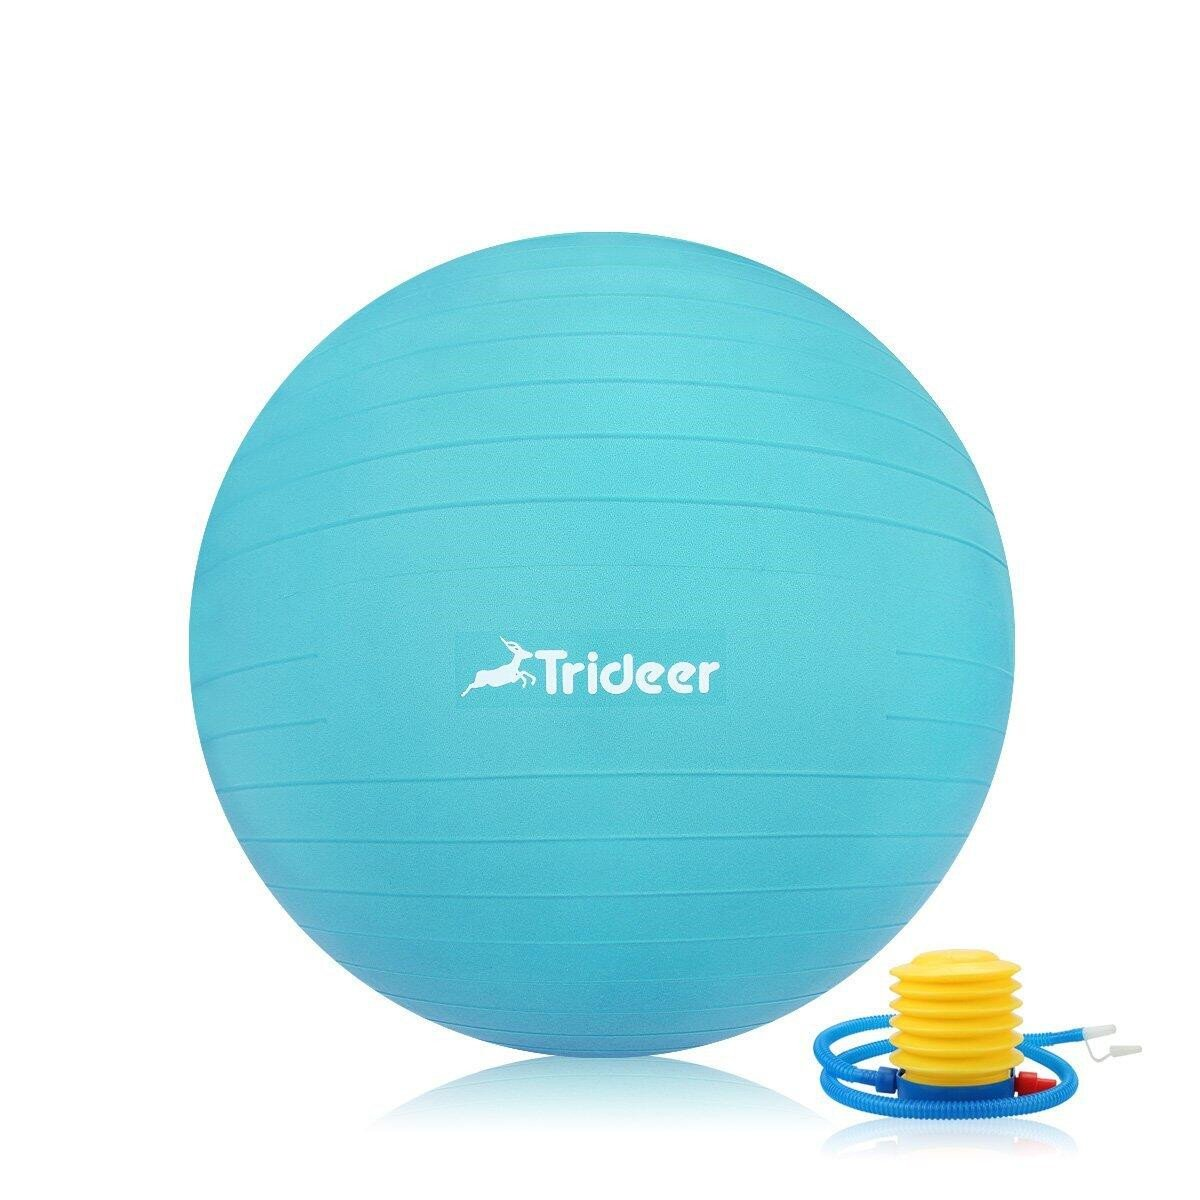 Trideer Exercise Ball (45-85cm) Extra Thick Yoga Ball Chair, Anti-Burst Heavy Duty Stability Ball Supports 2200lbs, Birthing Ball with Quick Pump (Office & Home & Gym) (Turkis, 55cm)